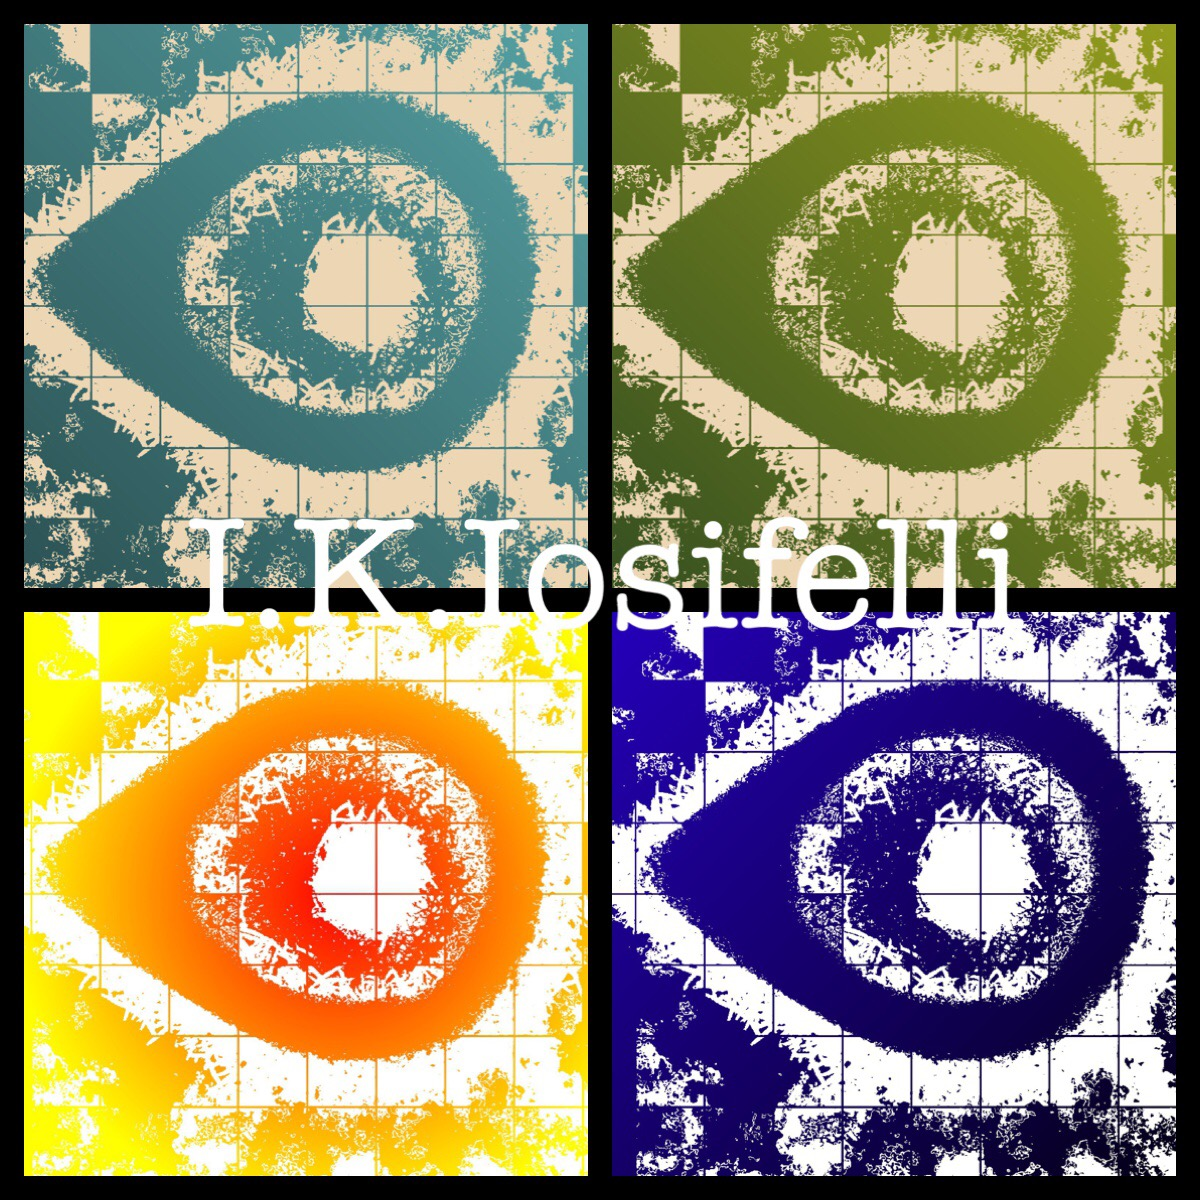 Eye Collection by I.K.Iosifelli